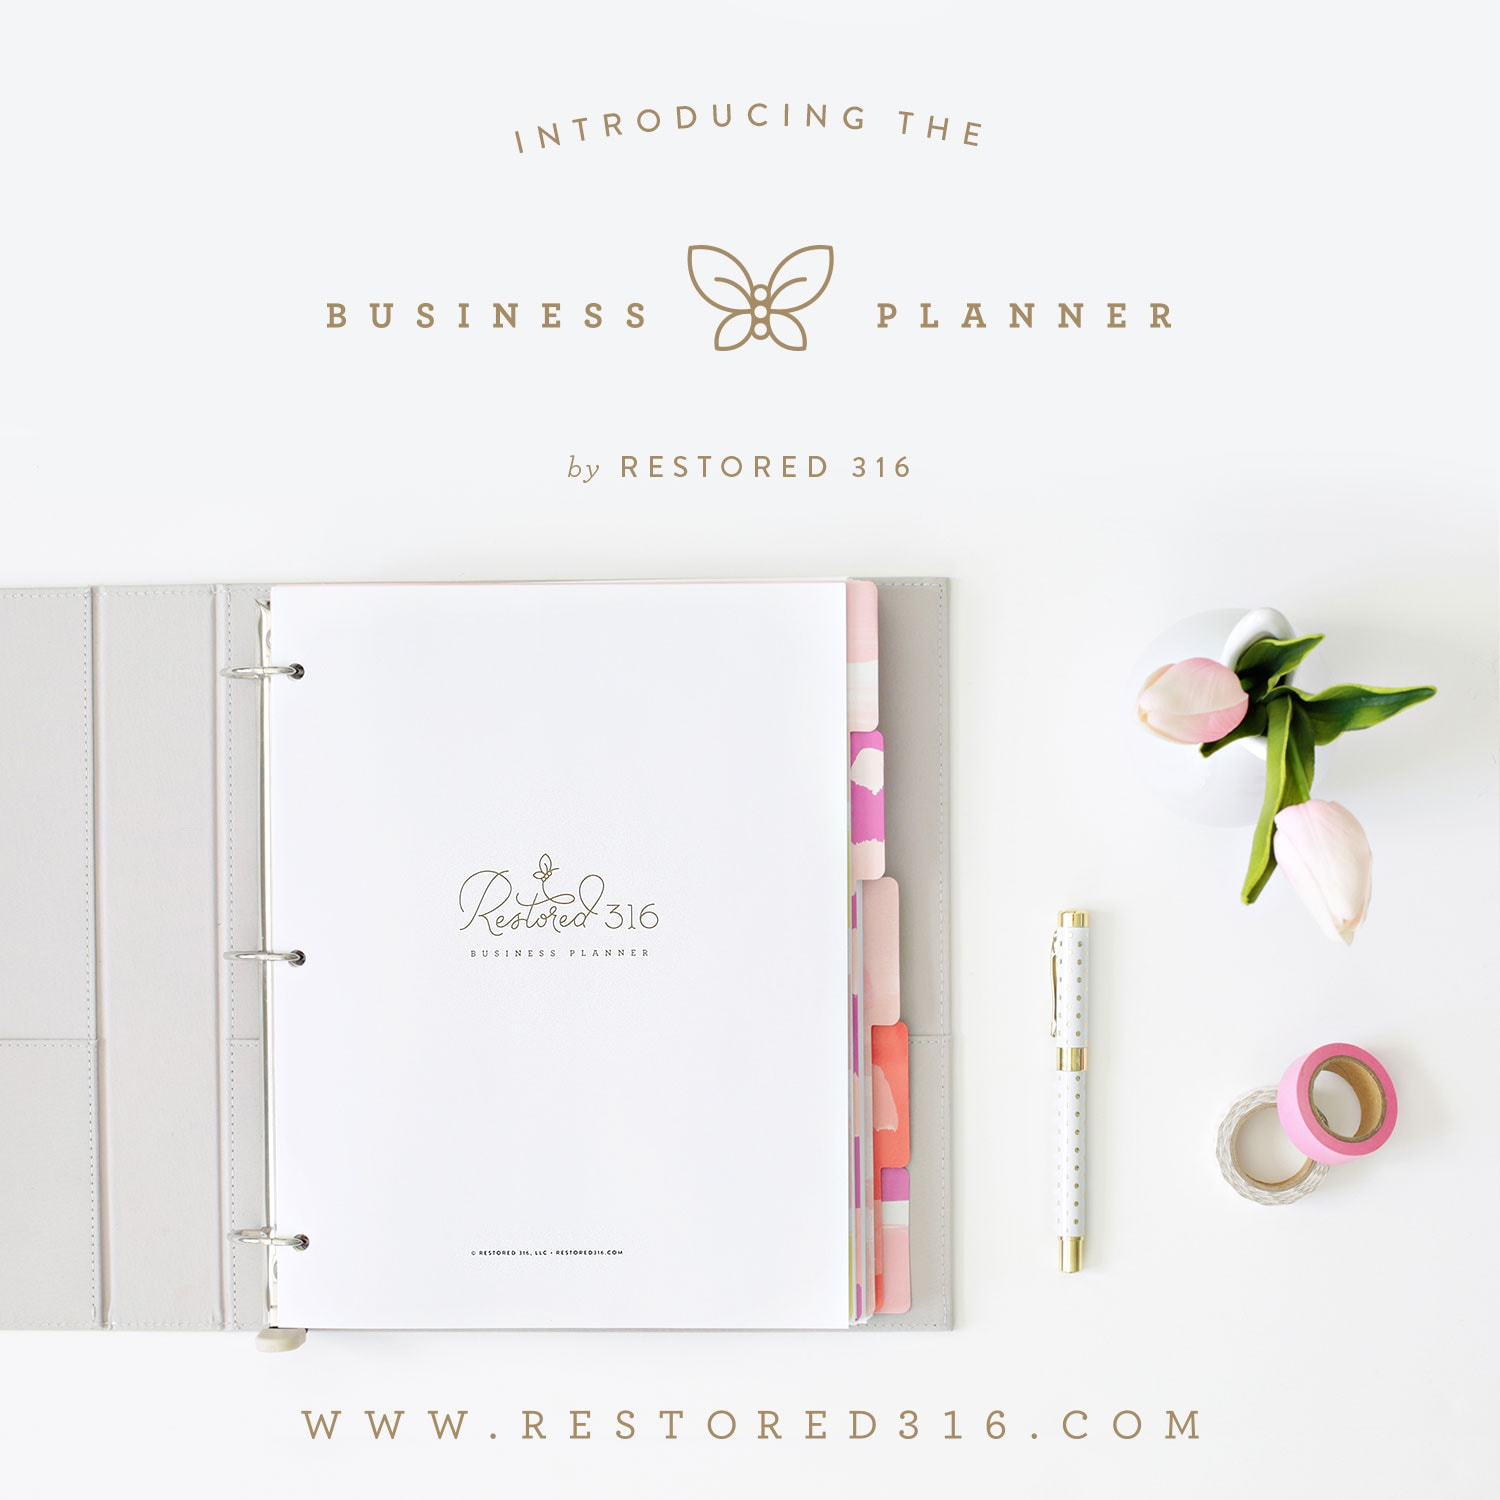 Restored 316 business planner review